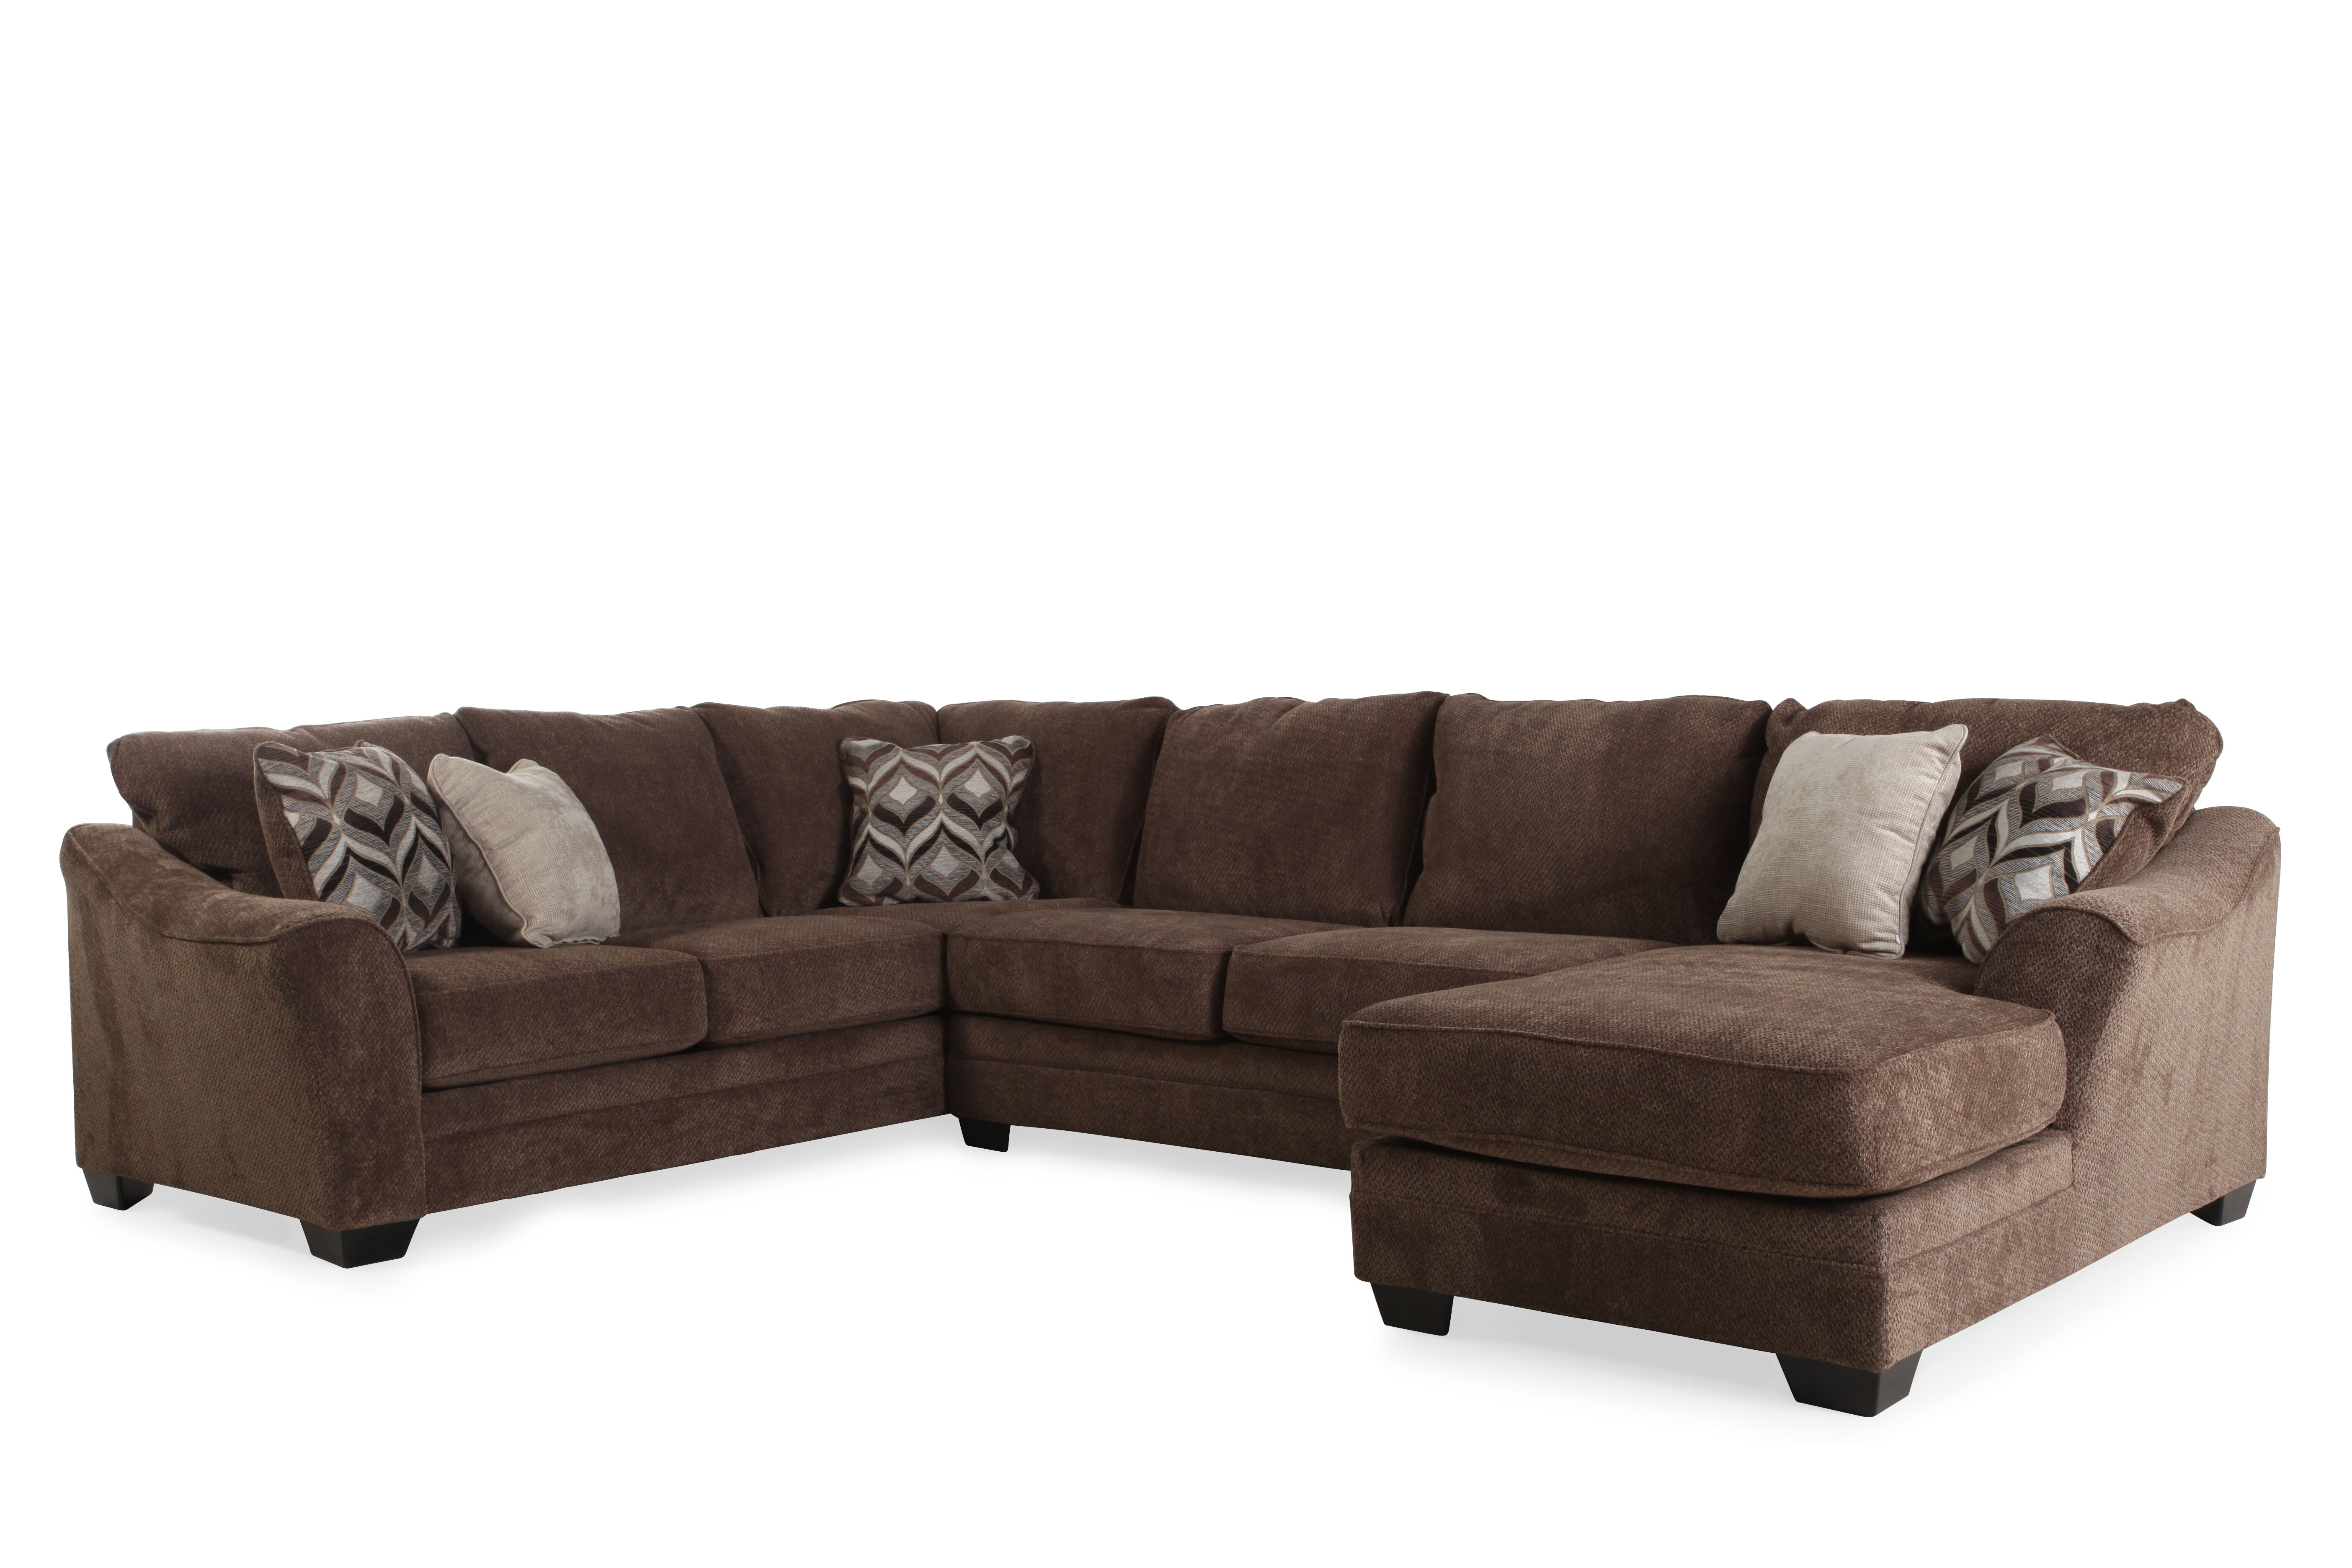 ThreePiece Contemporary 101 Sectional in Dark Brown Mathis